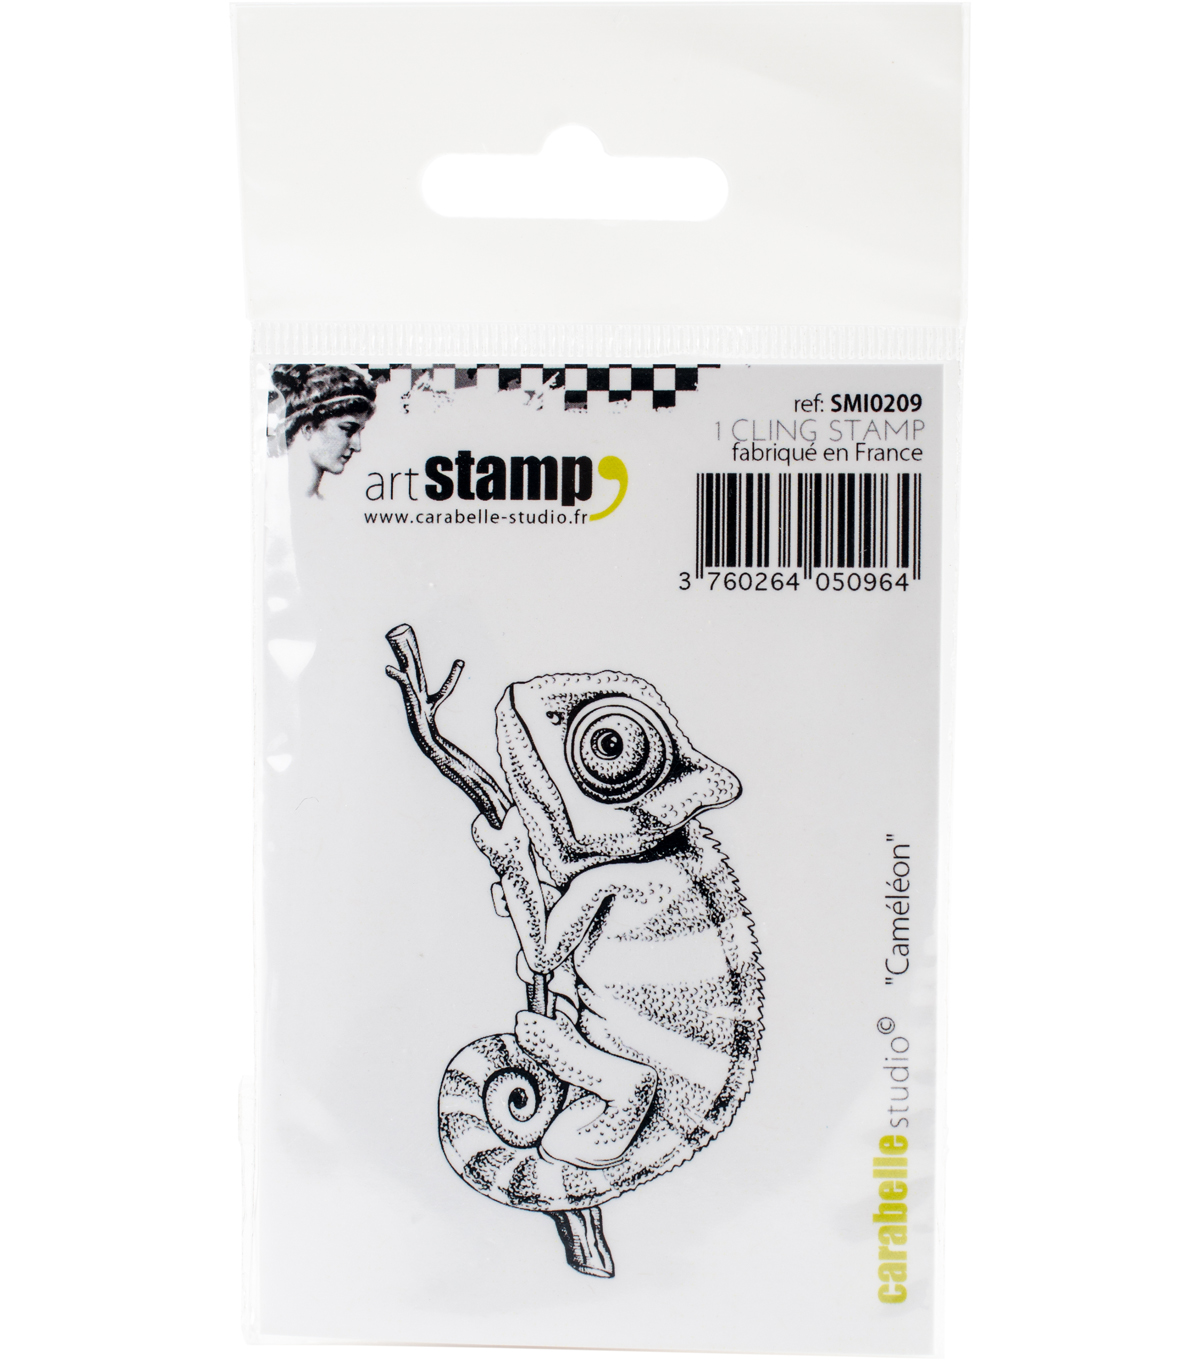 Carabelle Studio Cling Stamp Small-we Love